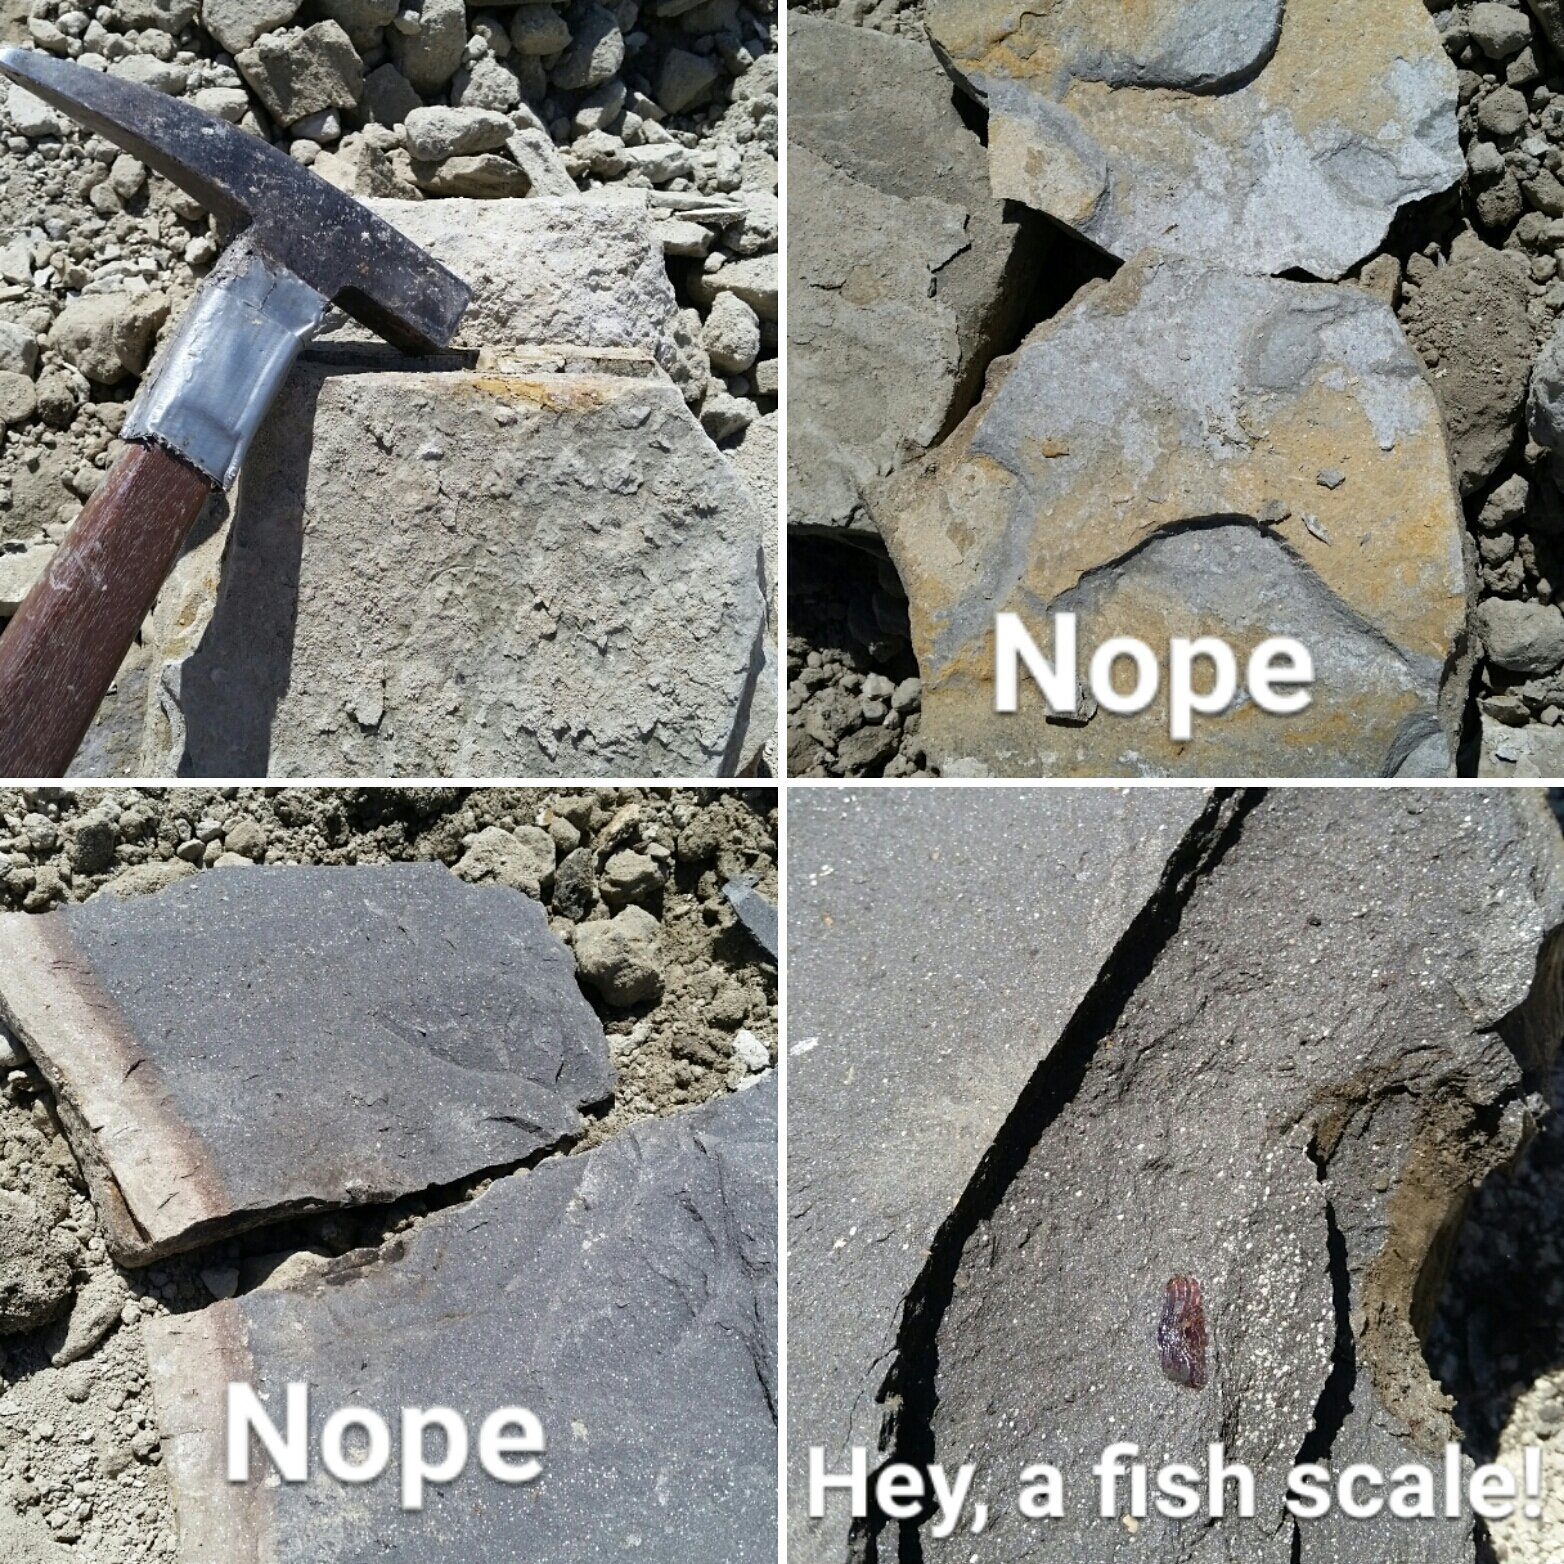 @science_a_thon Let's break open some shales and sandstone to see if there are any Paleontological finds... #scienceathon #dayofscience https://t.co/wmO41E00jh